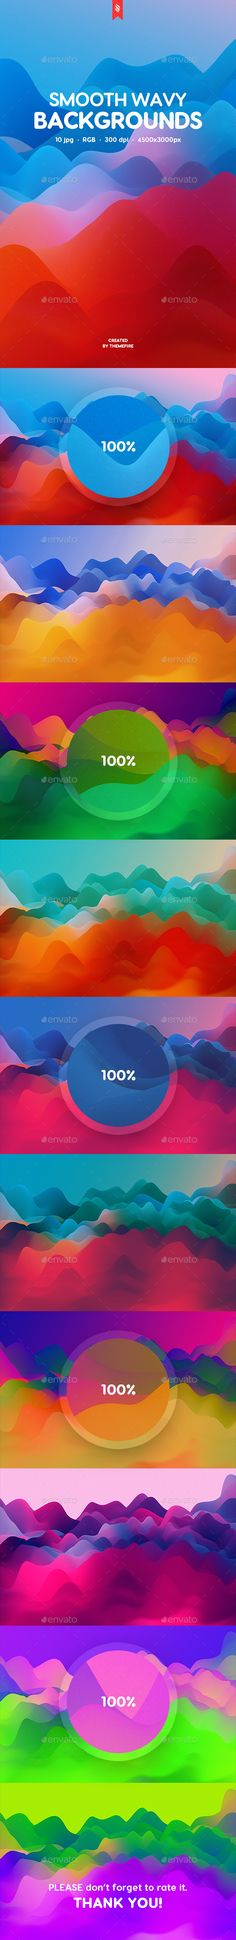 Colorful Smooth Wavy Backgrounds by themefire This pack contains 10 jpg abstract colorful smooth wavy backgrounds for your projects. You can use these backgrounds in the differ